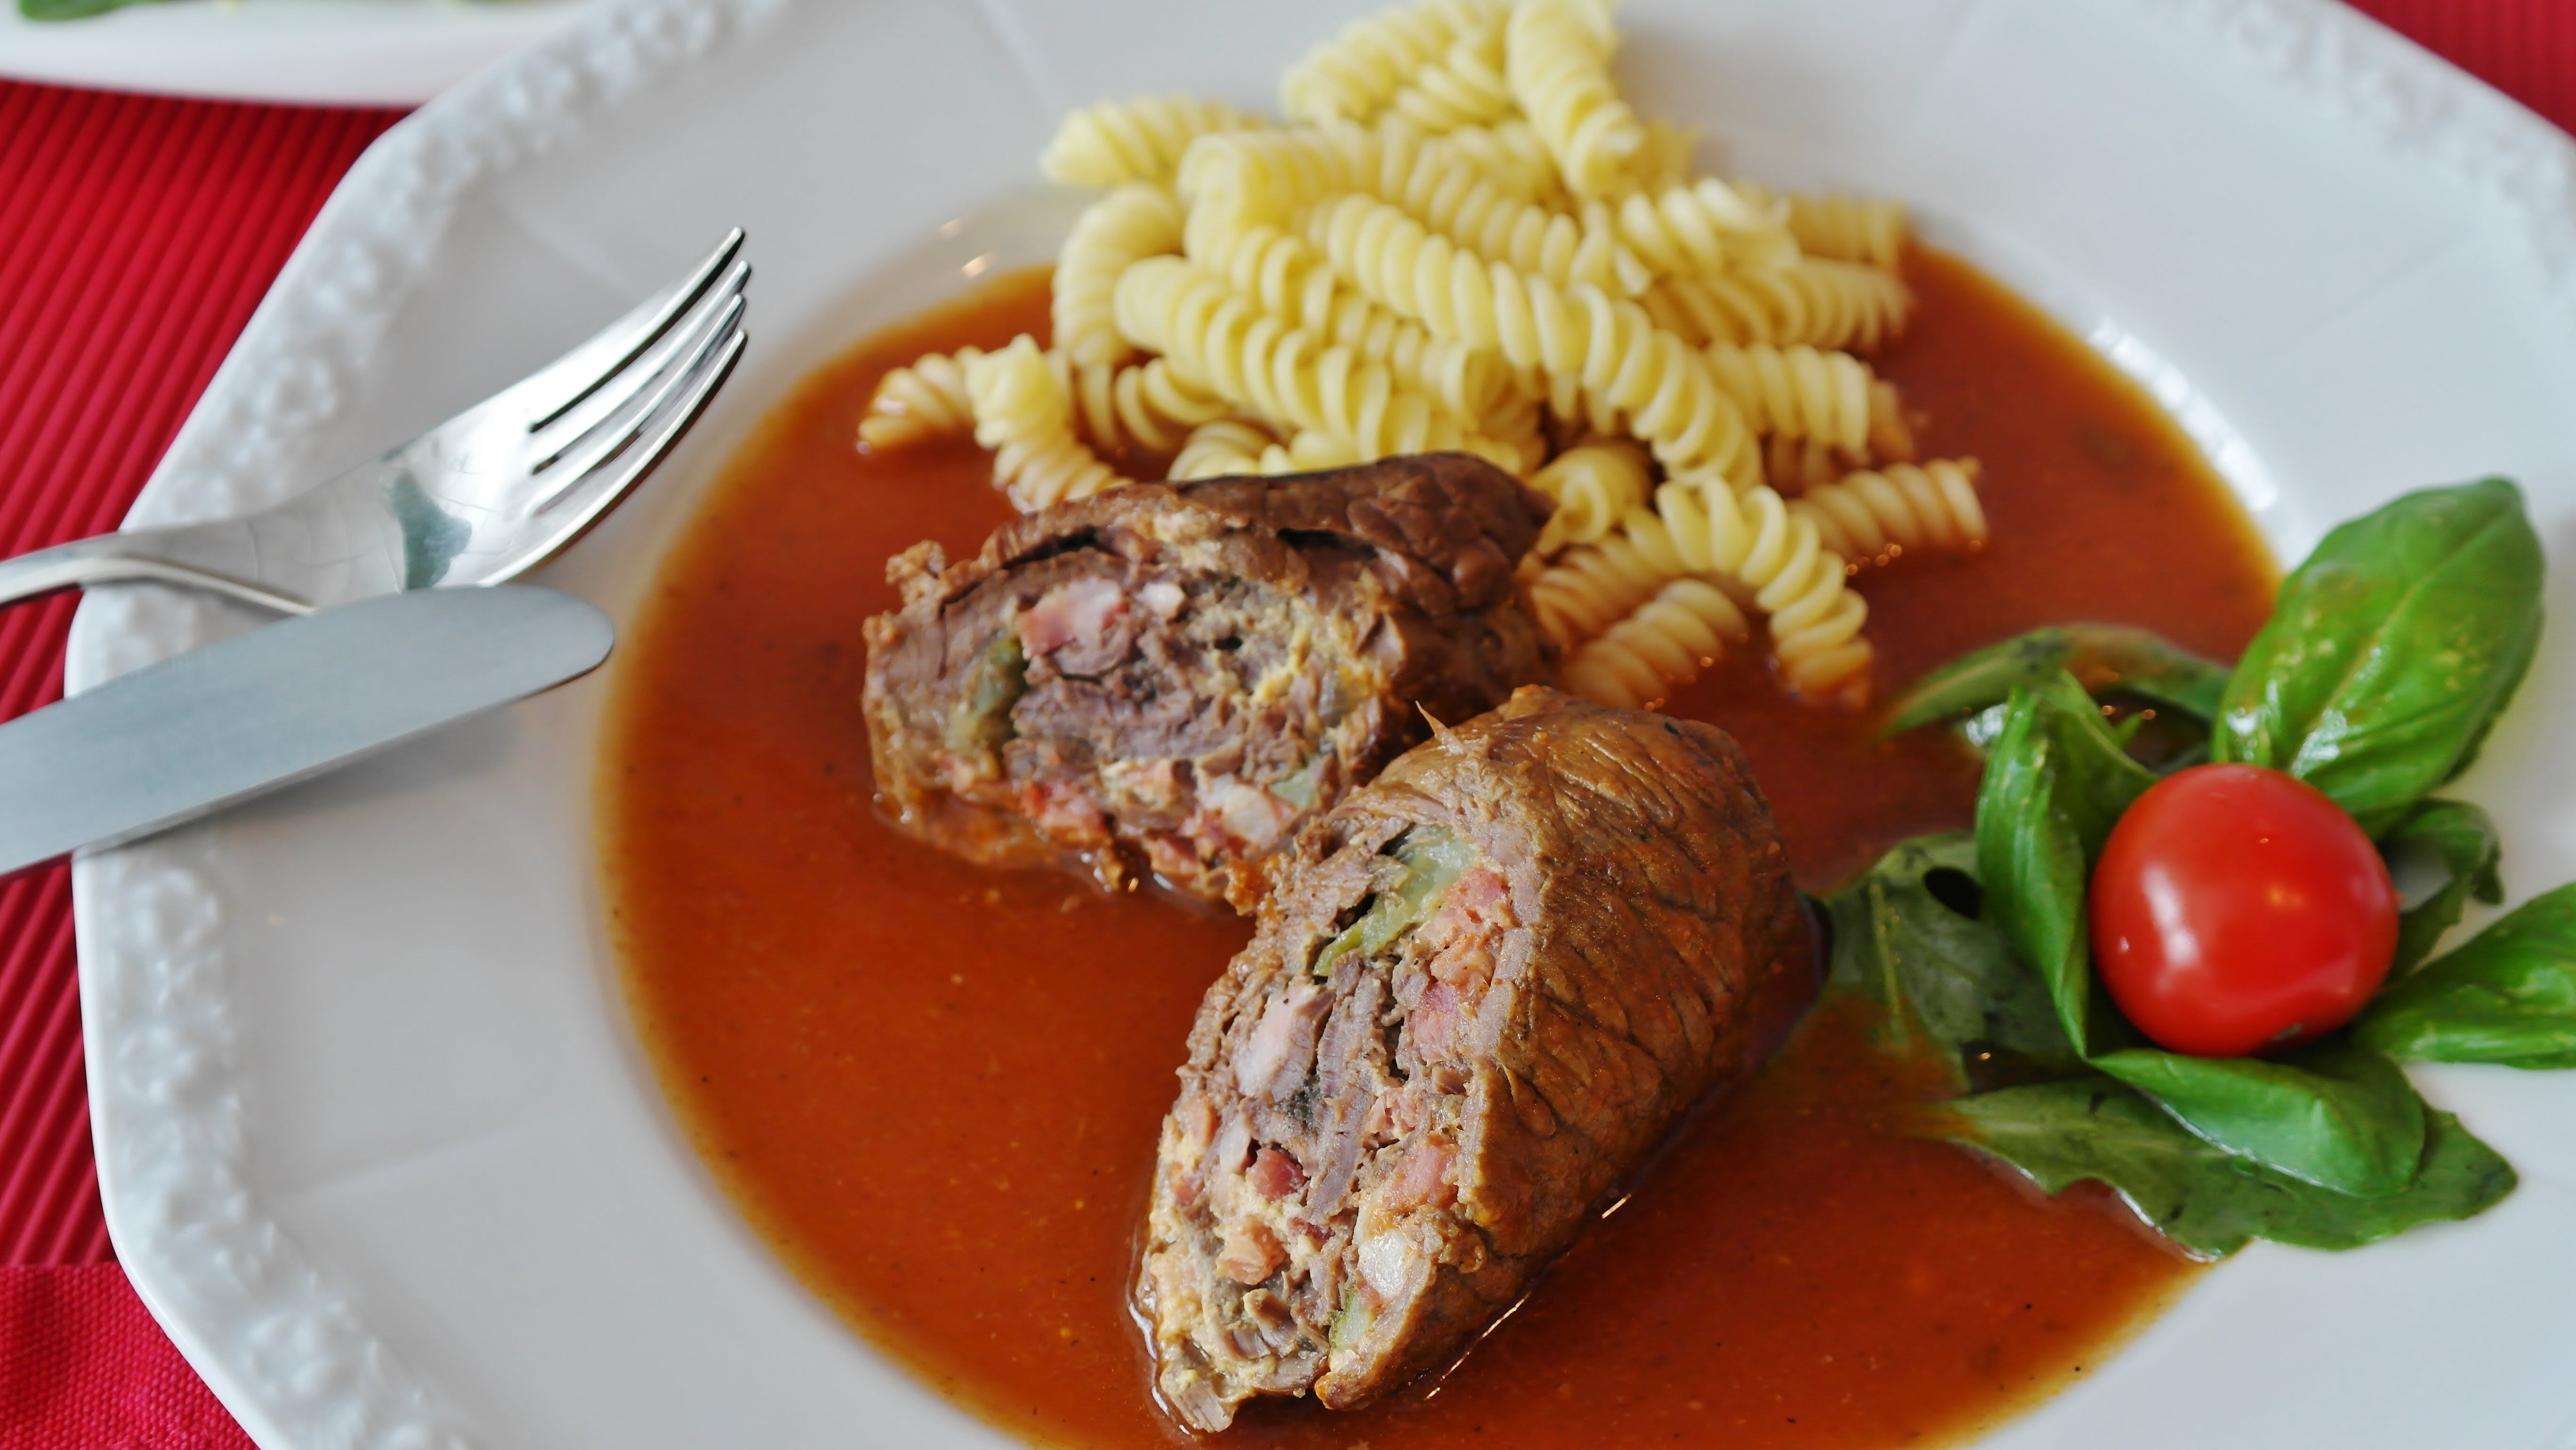 Meat and Pasta With Cherry Tomato Dish